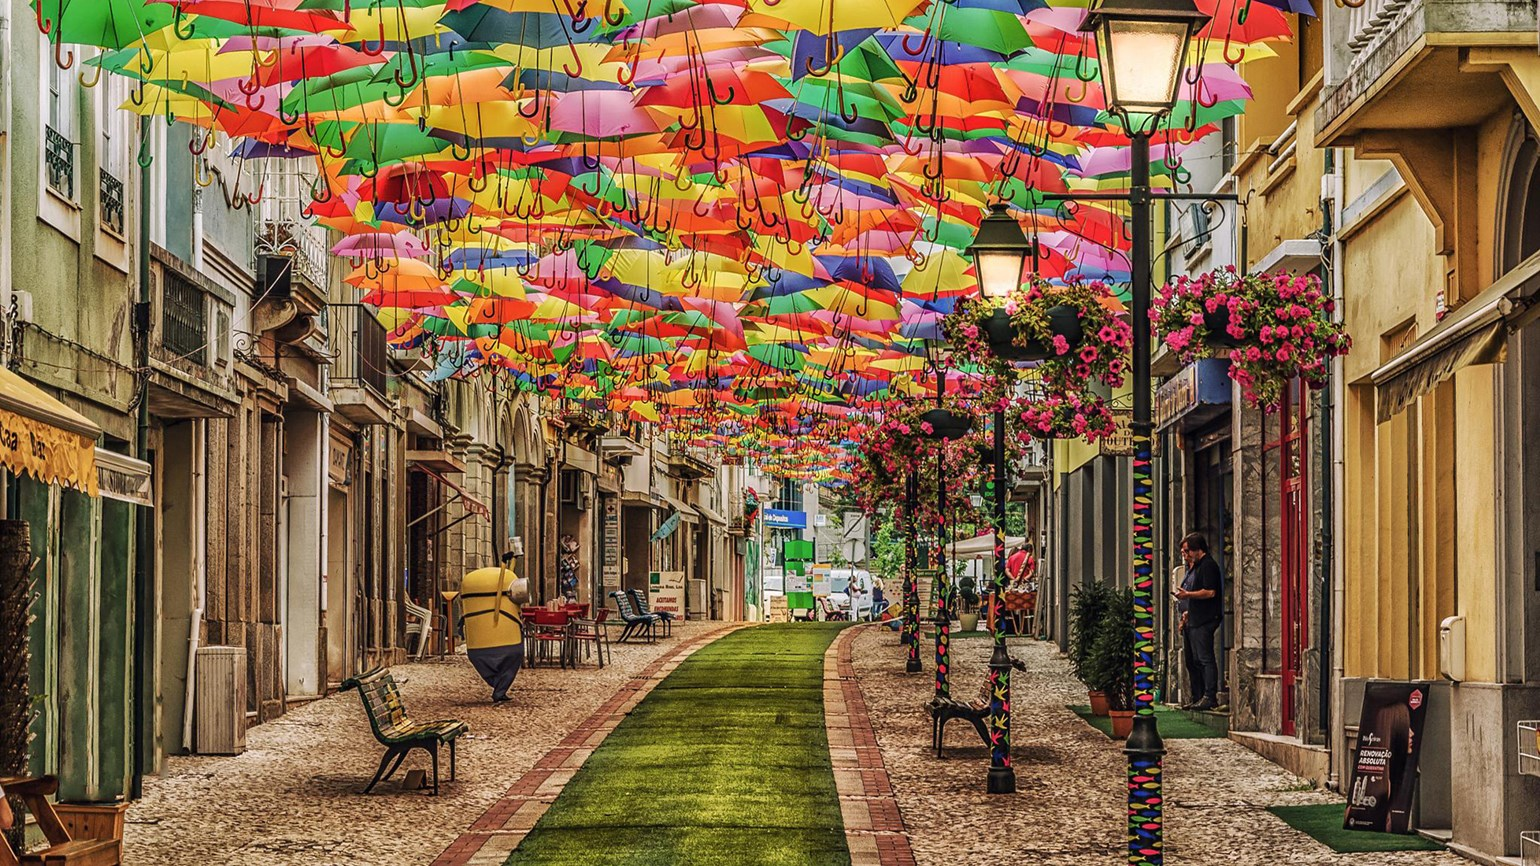 Pensacola opens umbrellas for outdoor art installation